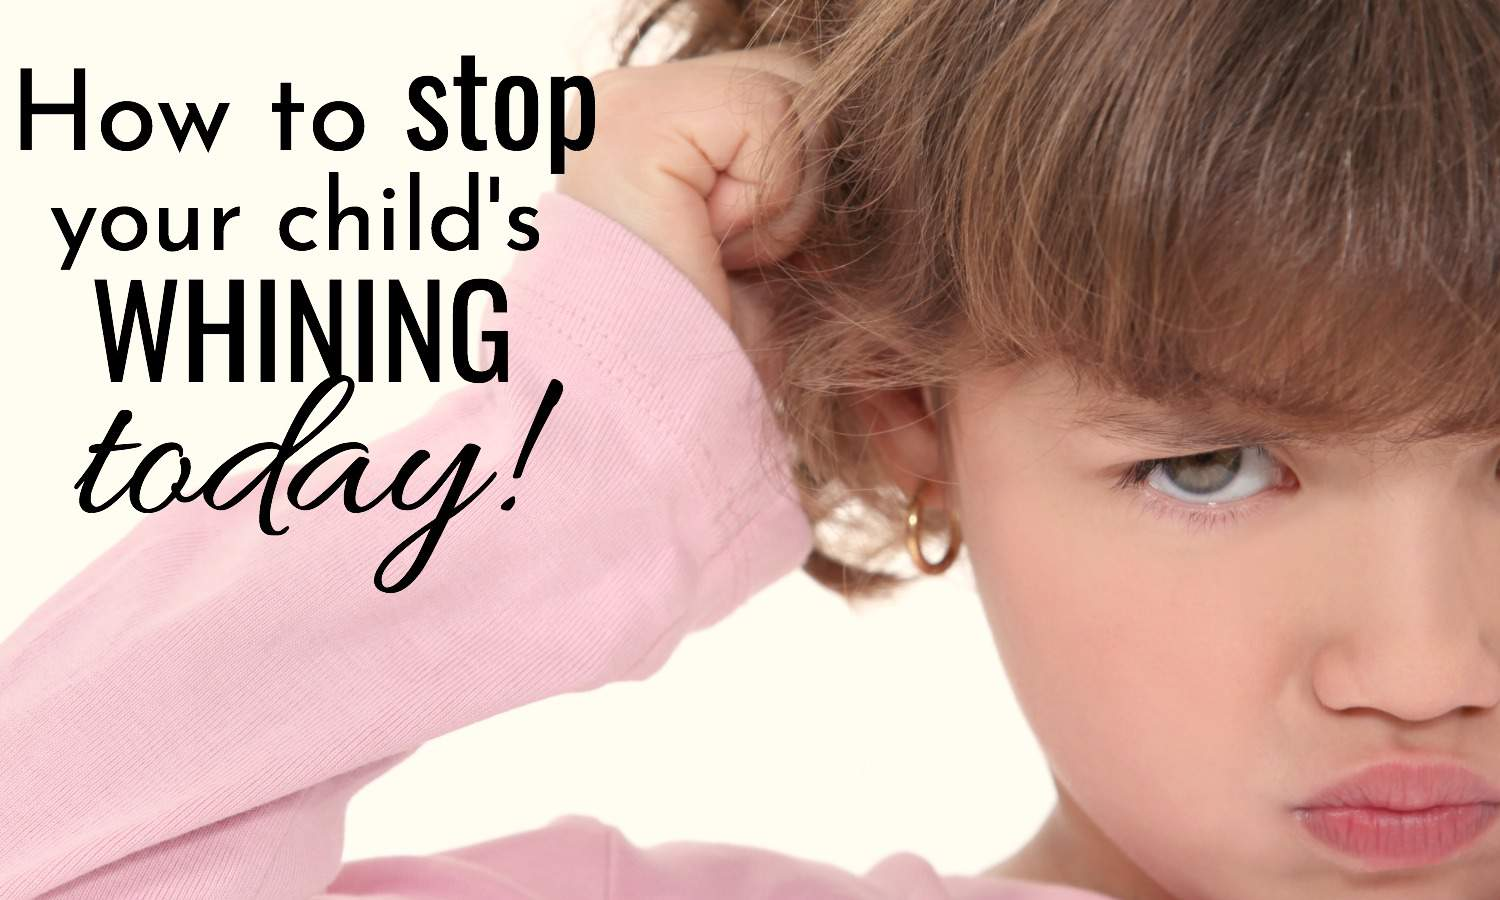 how to stop your child's whining today